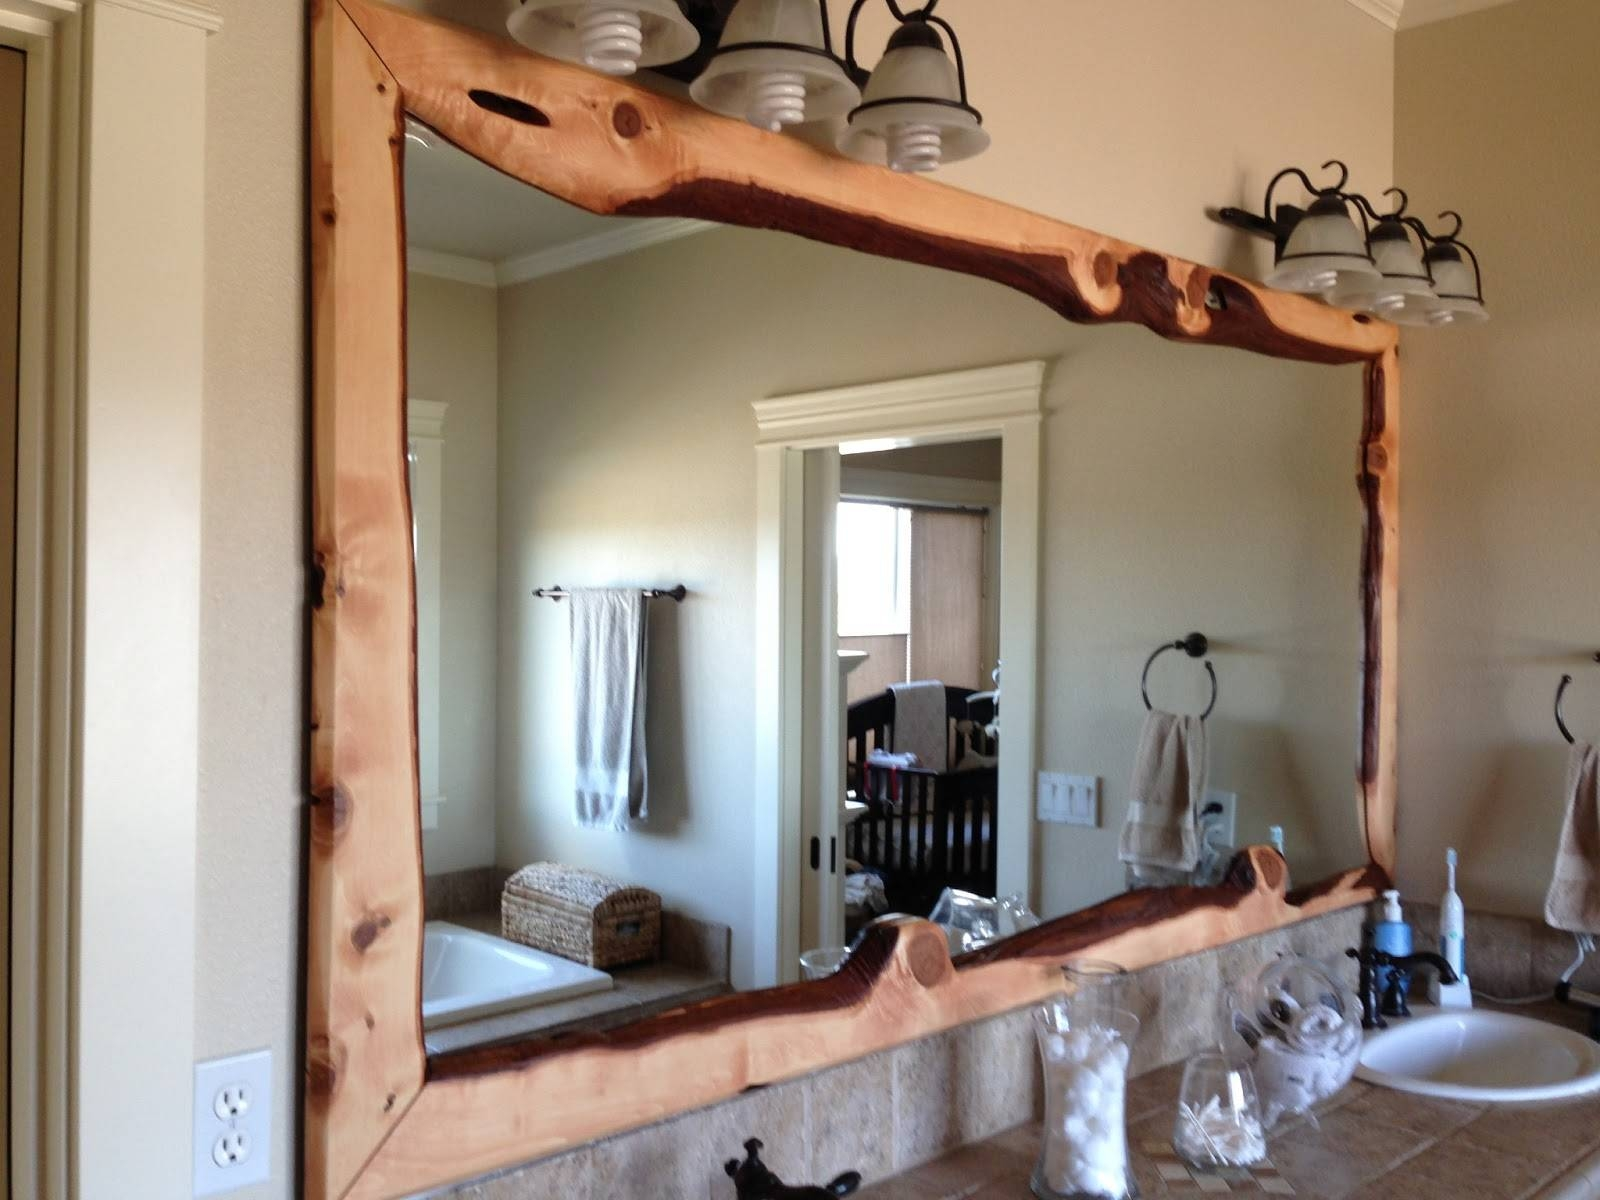 Oak Framed Bathroom Mirror - Kristinawood in Large Oak Framed Mirrors (Image 8 of 25)